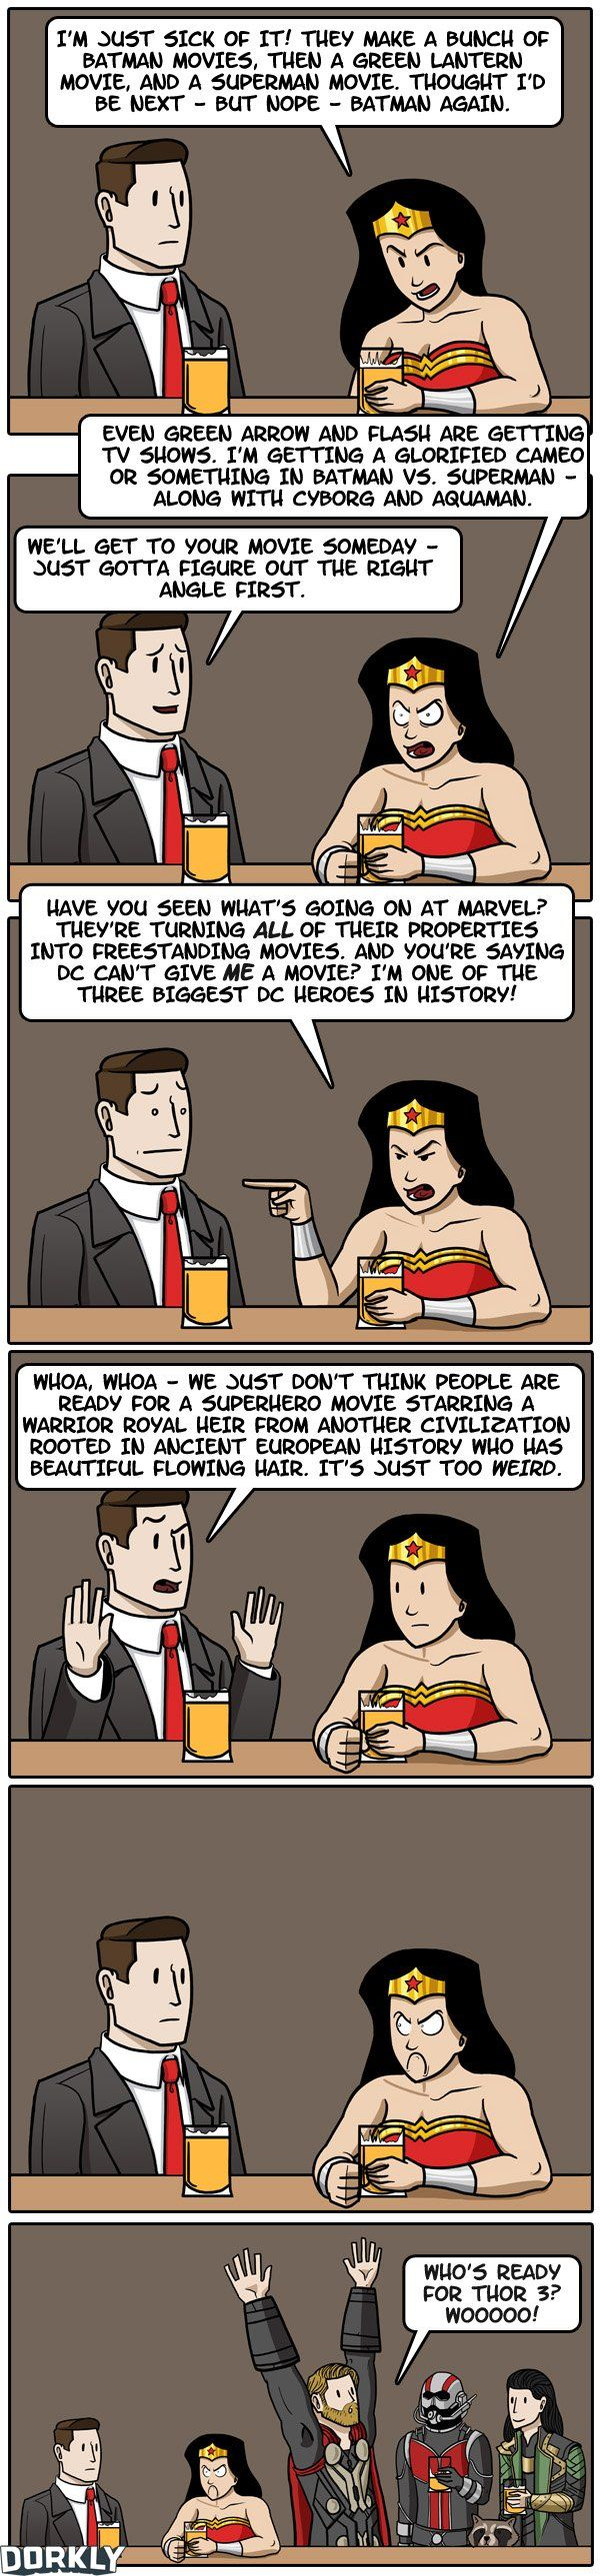 #DearMarvel, @M C, @DC Comics Dorkly Comic: A Wonder Woman Movie Just Wouldn't Work [Comic]